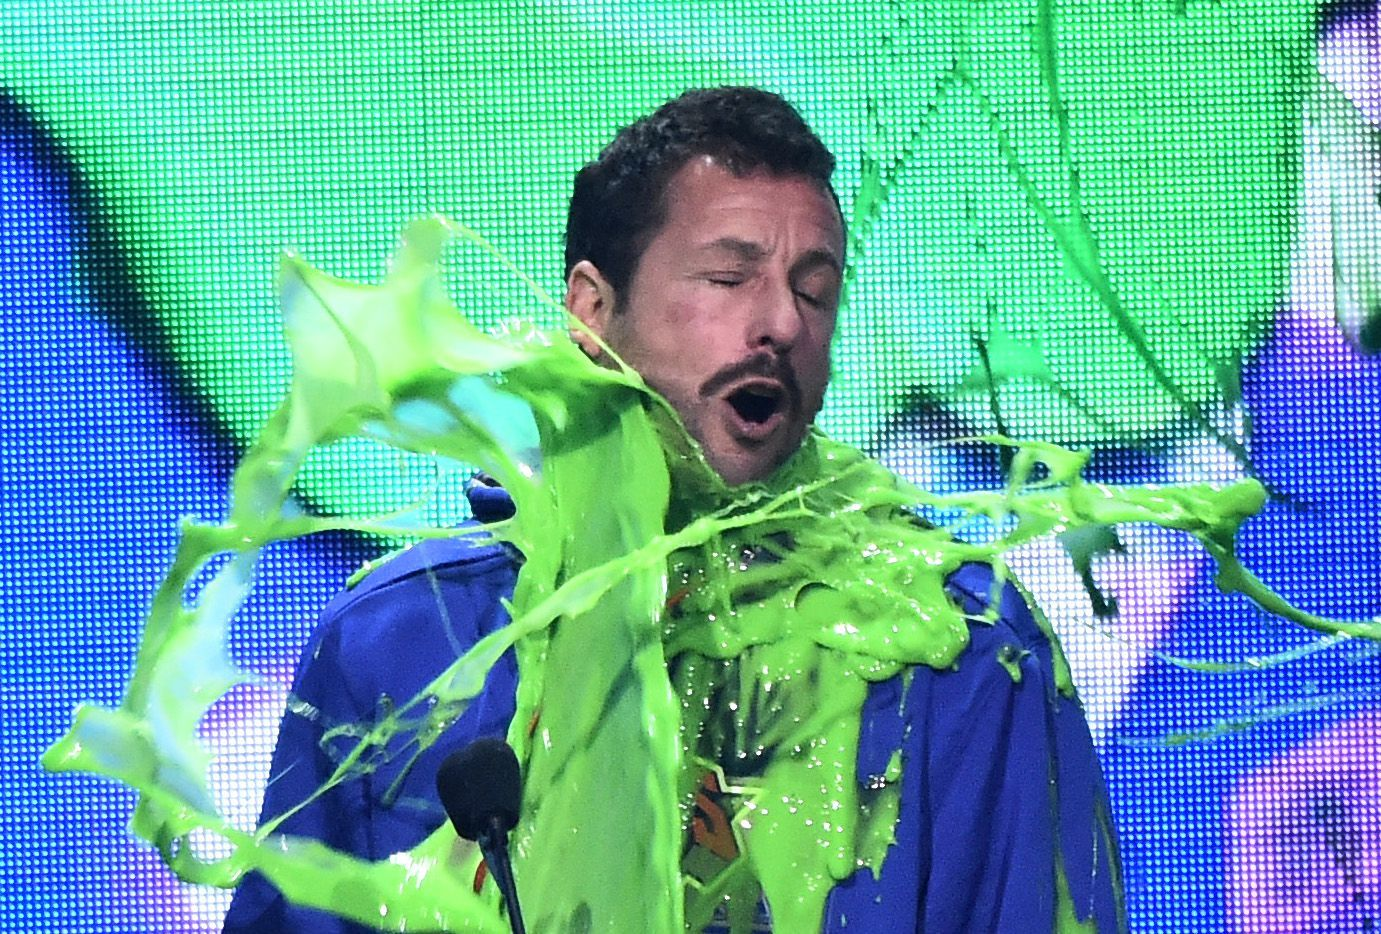 Adam Sandler attends the Nickelodeon Kids' Choice Awards in Los Angeles on March 23, 2019.